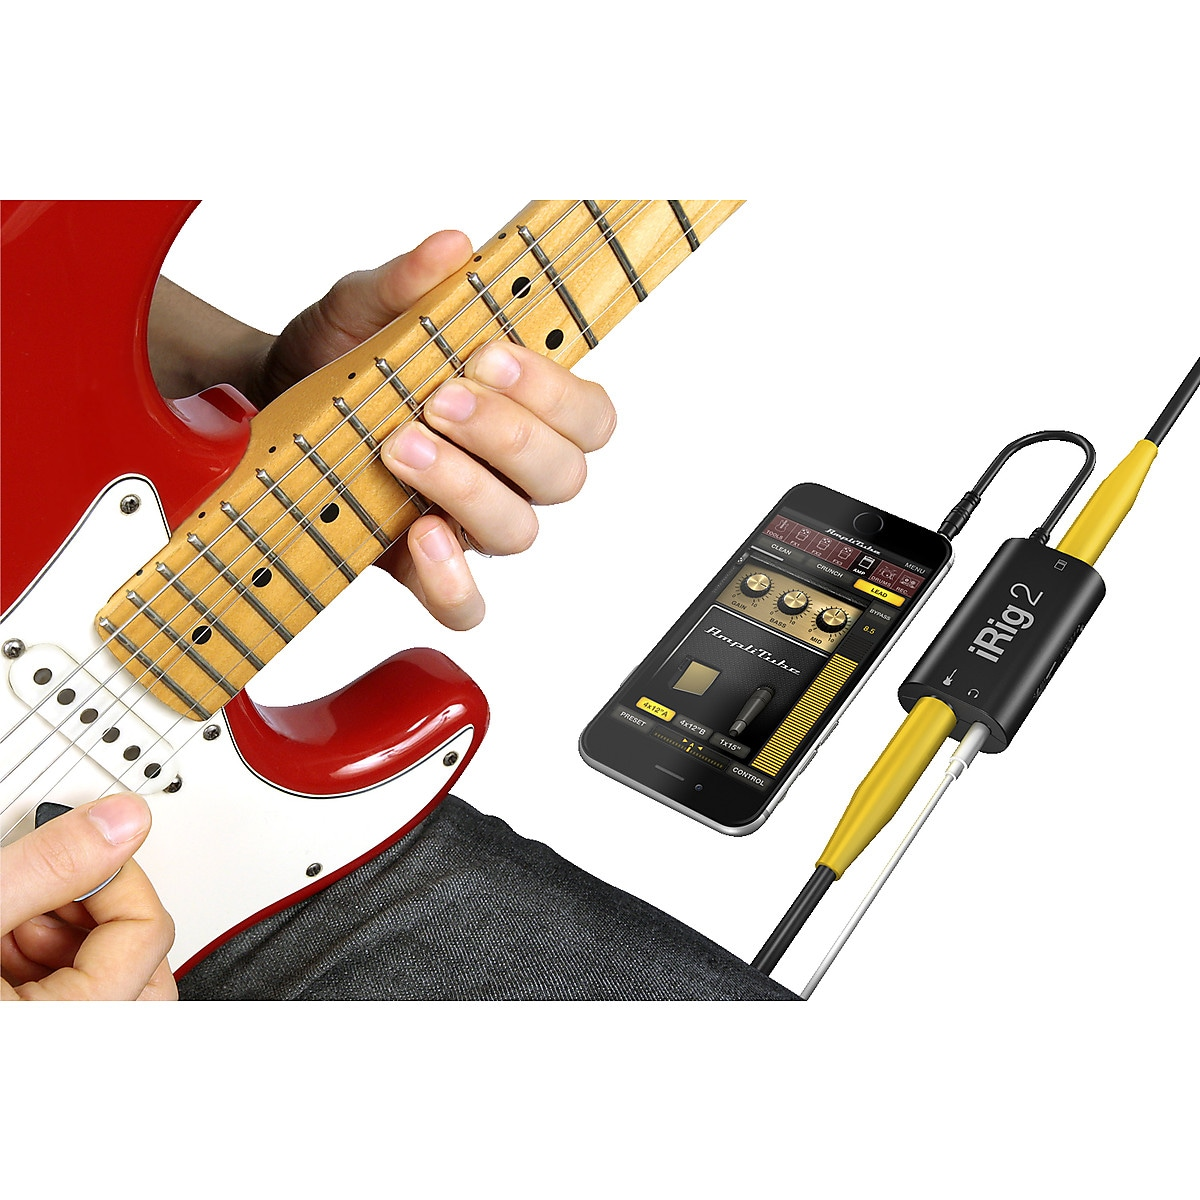 IK Multimedia iRig 2 gitarinterface